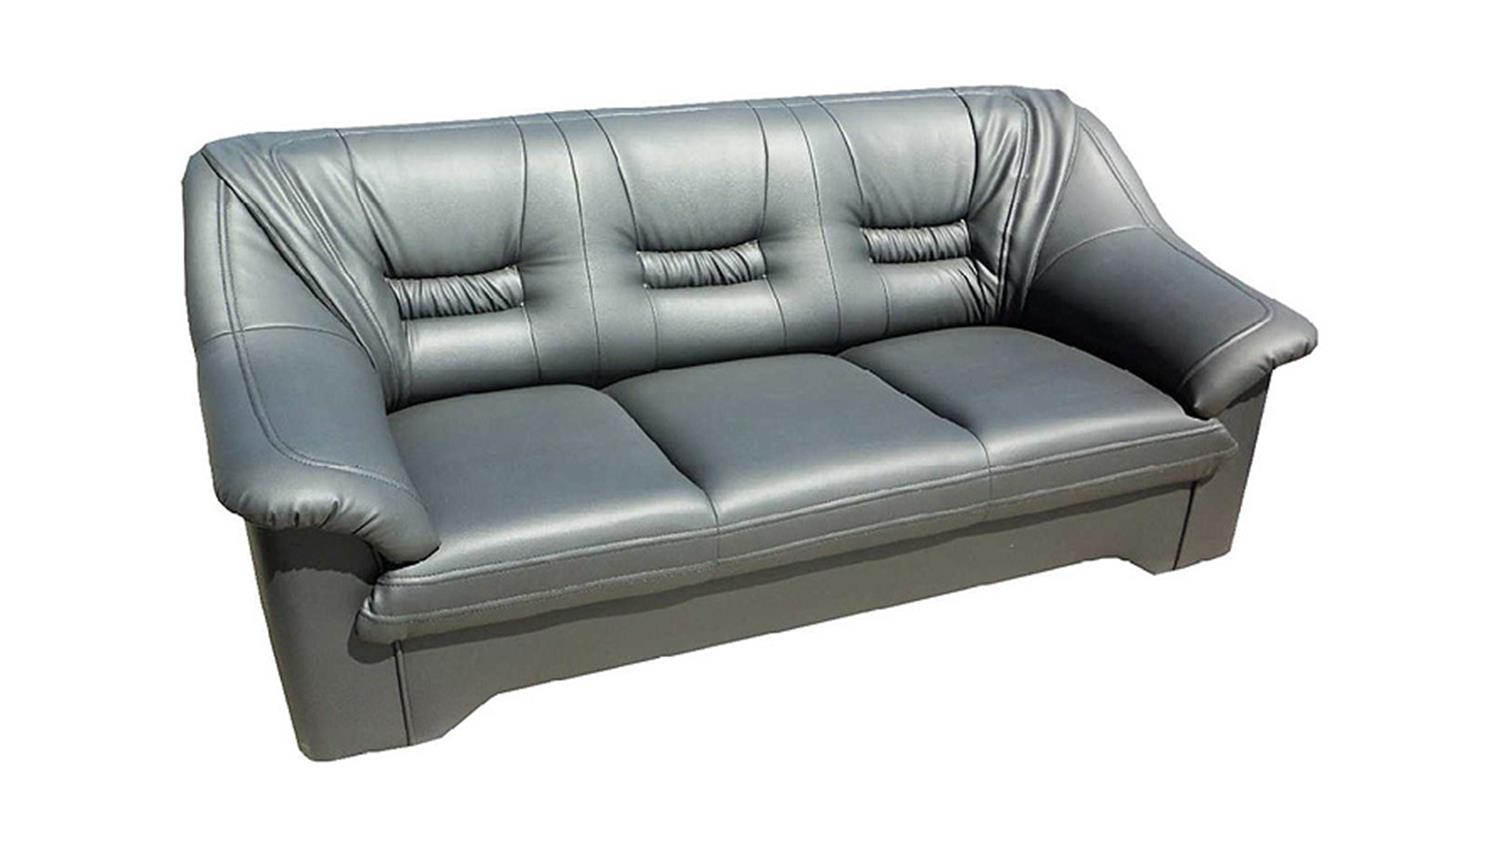 3 sitzer ledercouch amazing ledersofa schwarz sitzer ledercouch sitzer sofa couch sofa in. Black Bedroom Furniture Sets. Home Design Ideas